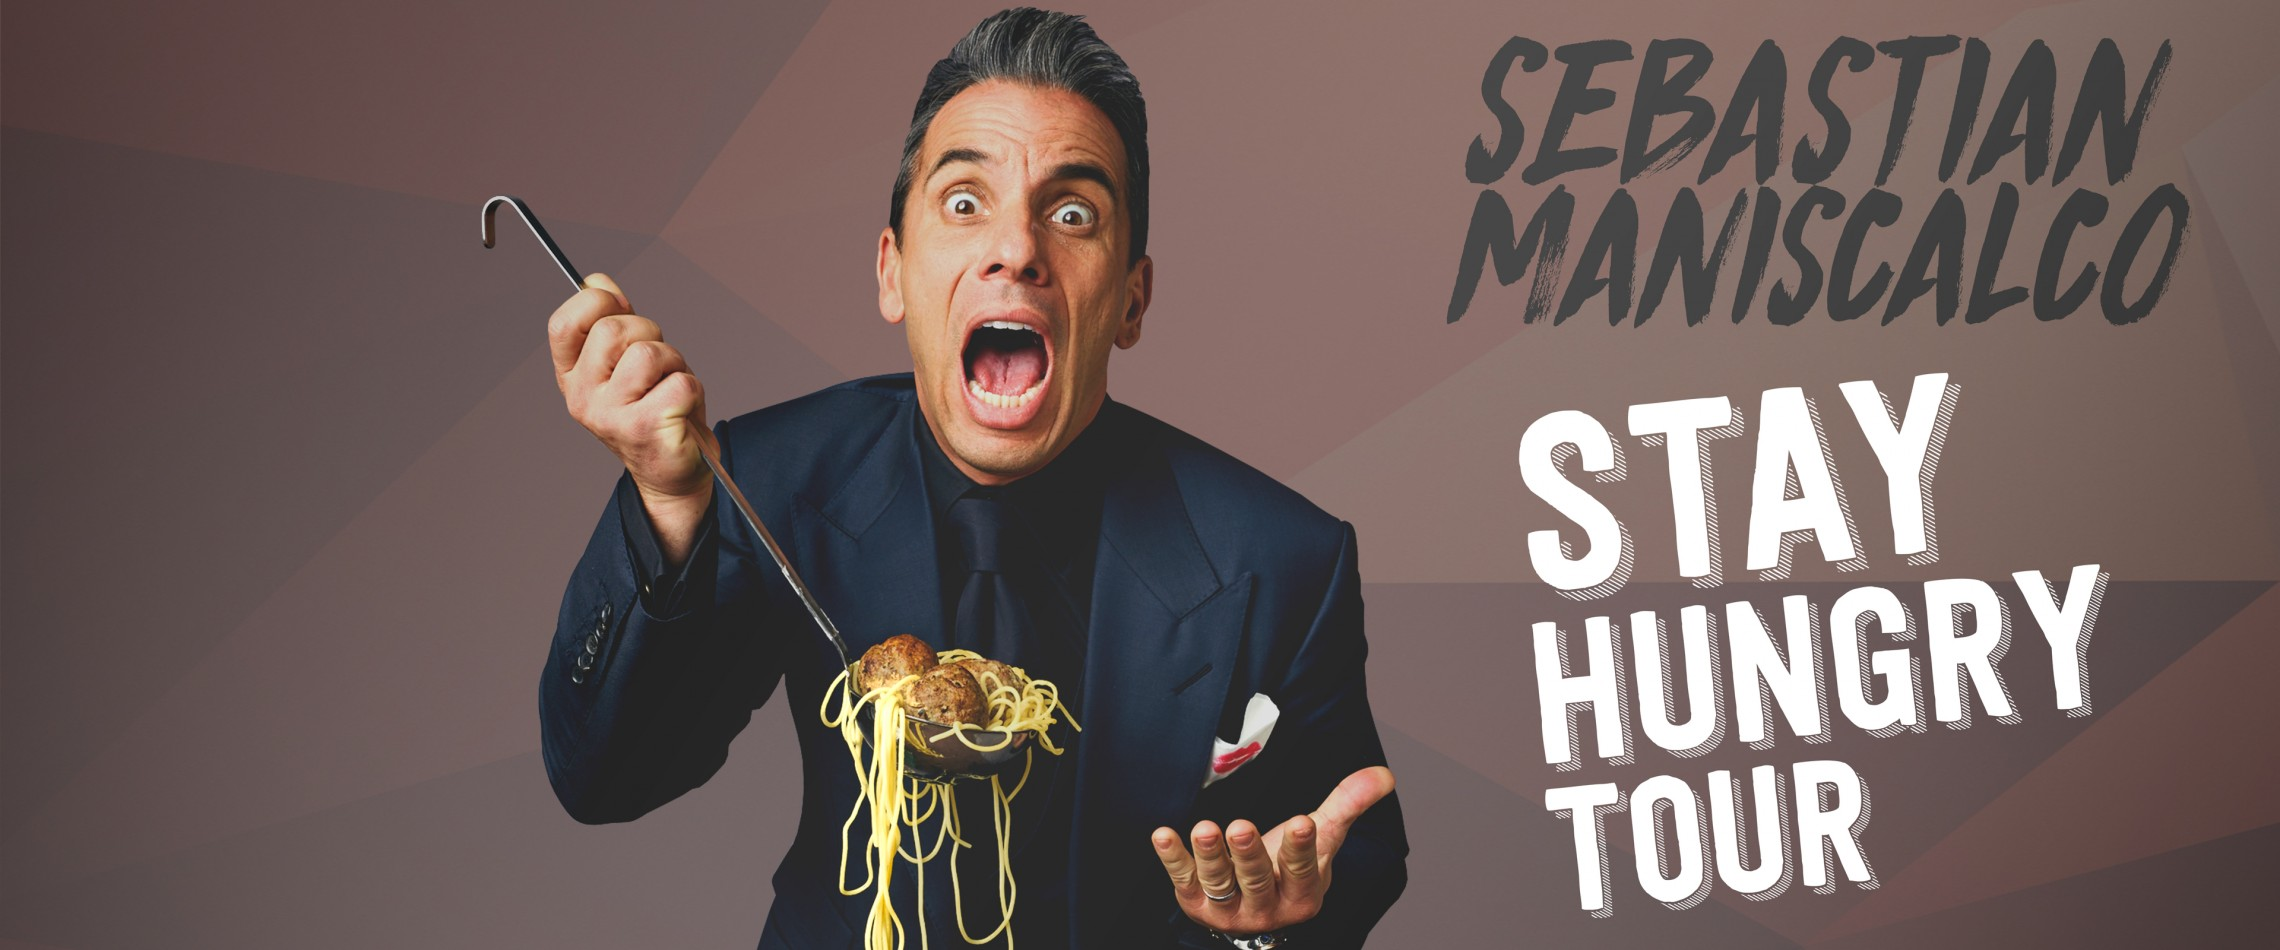 Sebastian Maniscalco: Stay Hungry Tour - Live at the Eccles